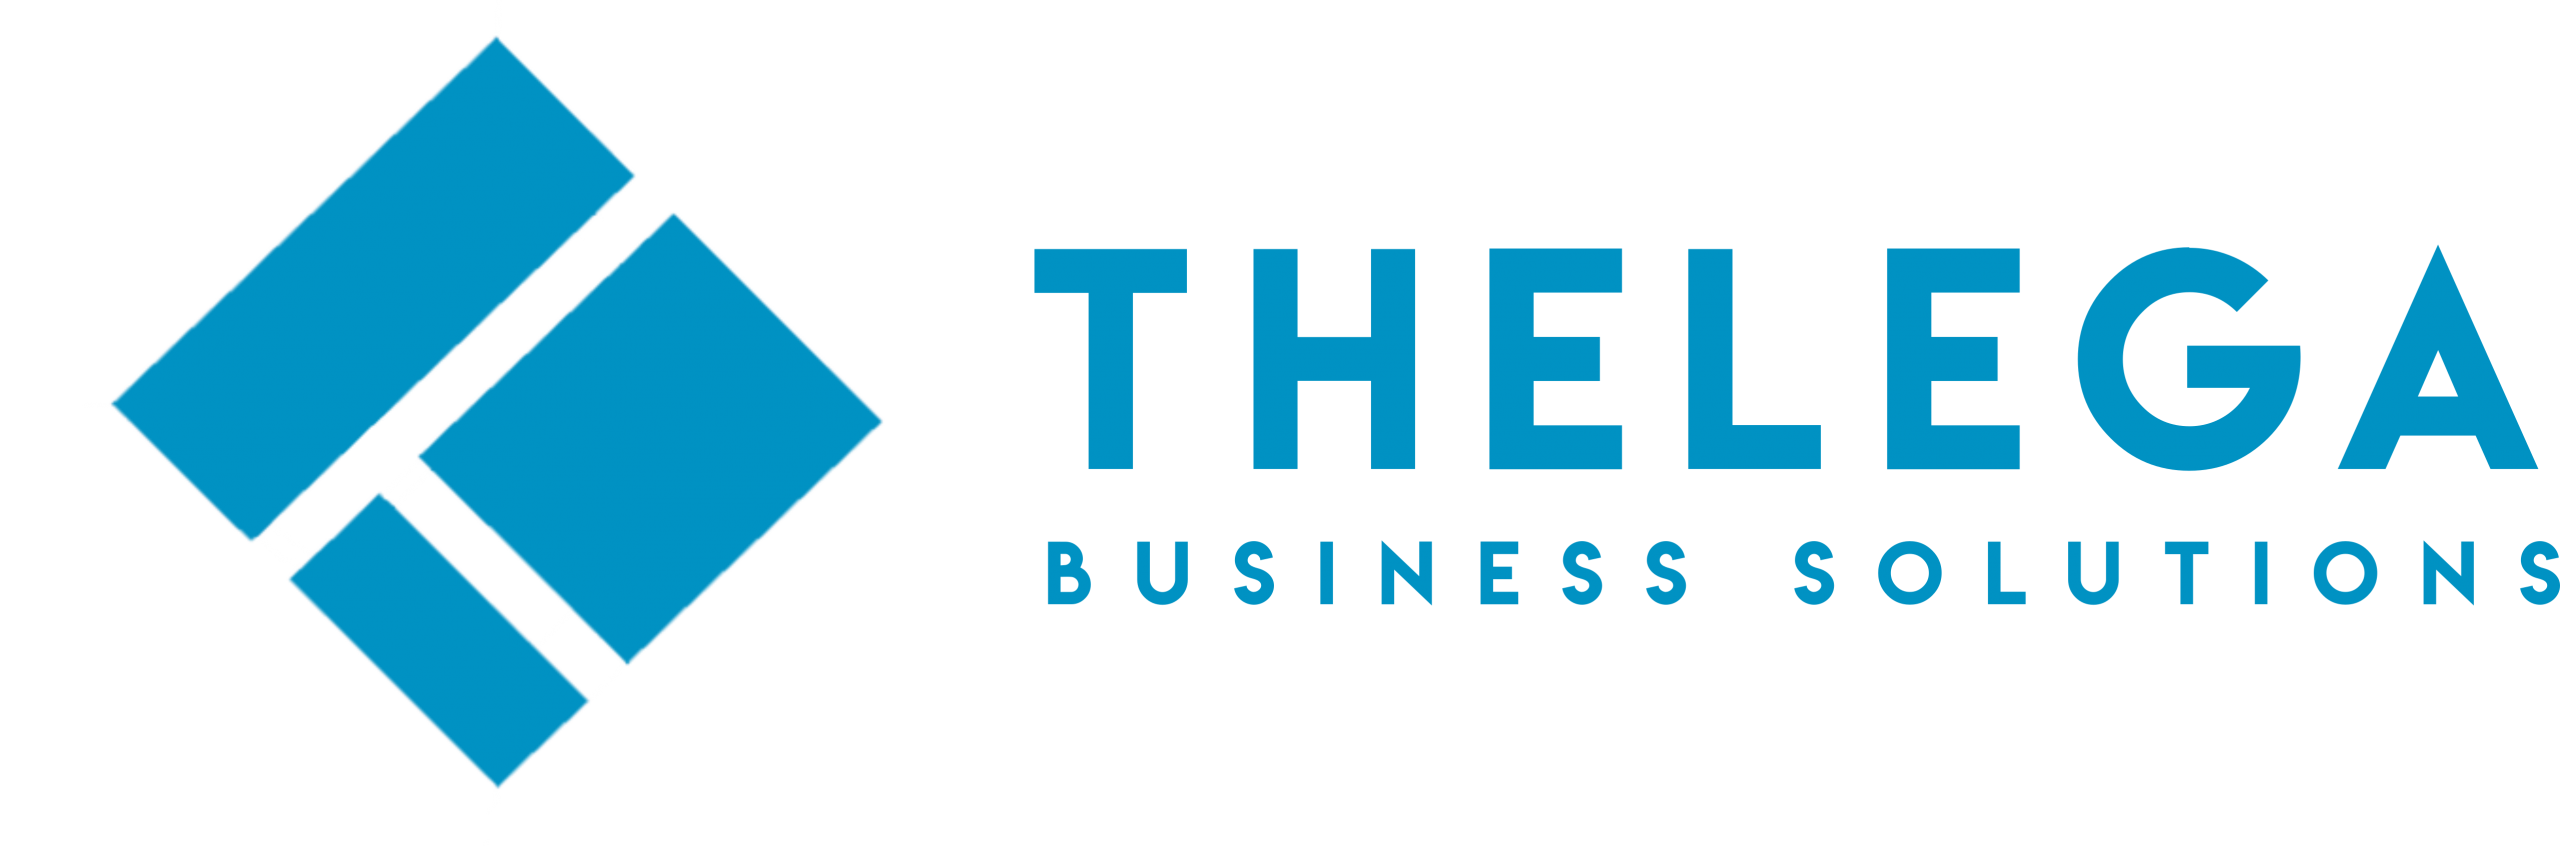 Thelega Business Solutions